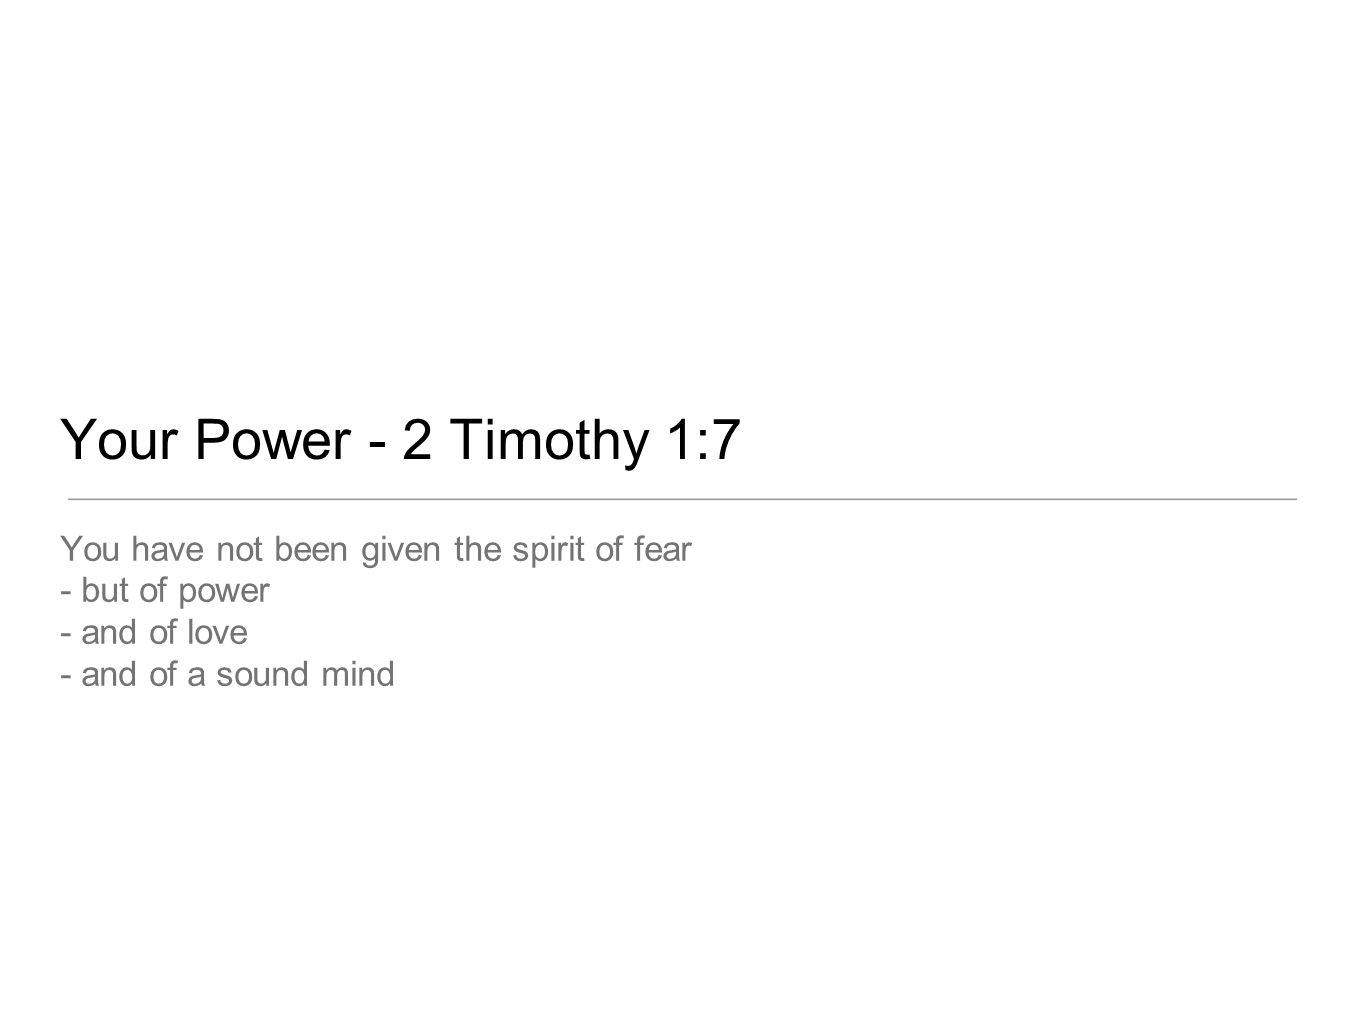 Your Power - 2 Timothy 1:7 You have not been given the spirit of fear